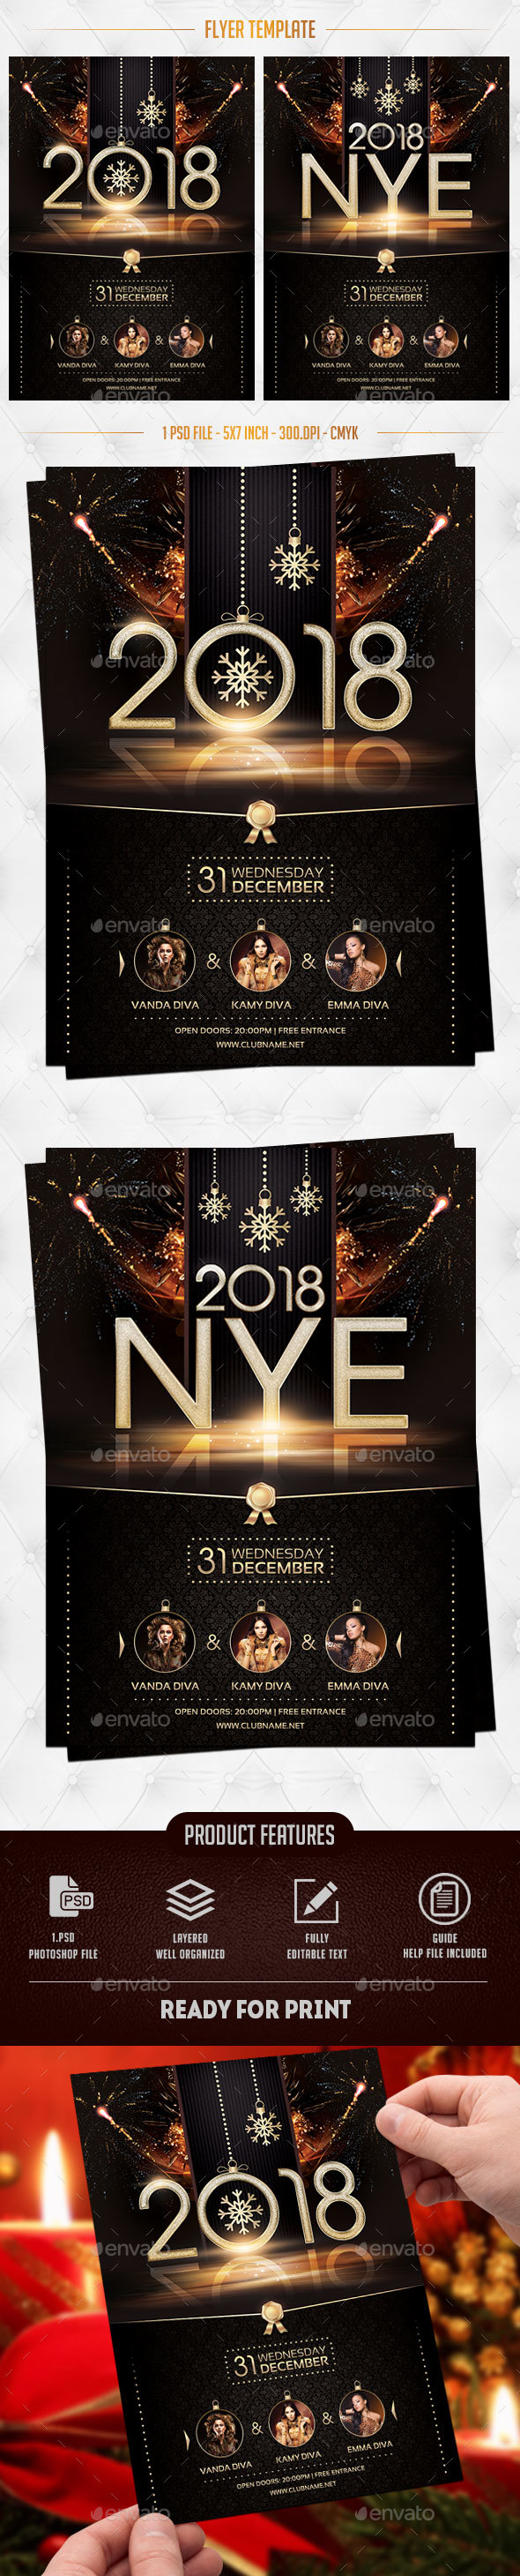 2018 NYE Flyer Template - Events Flyers